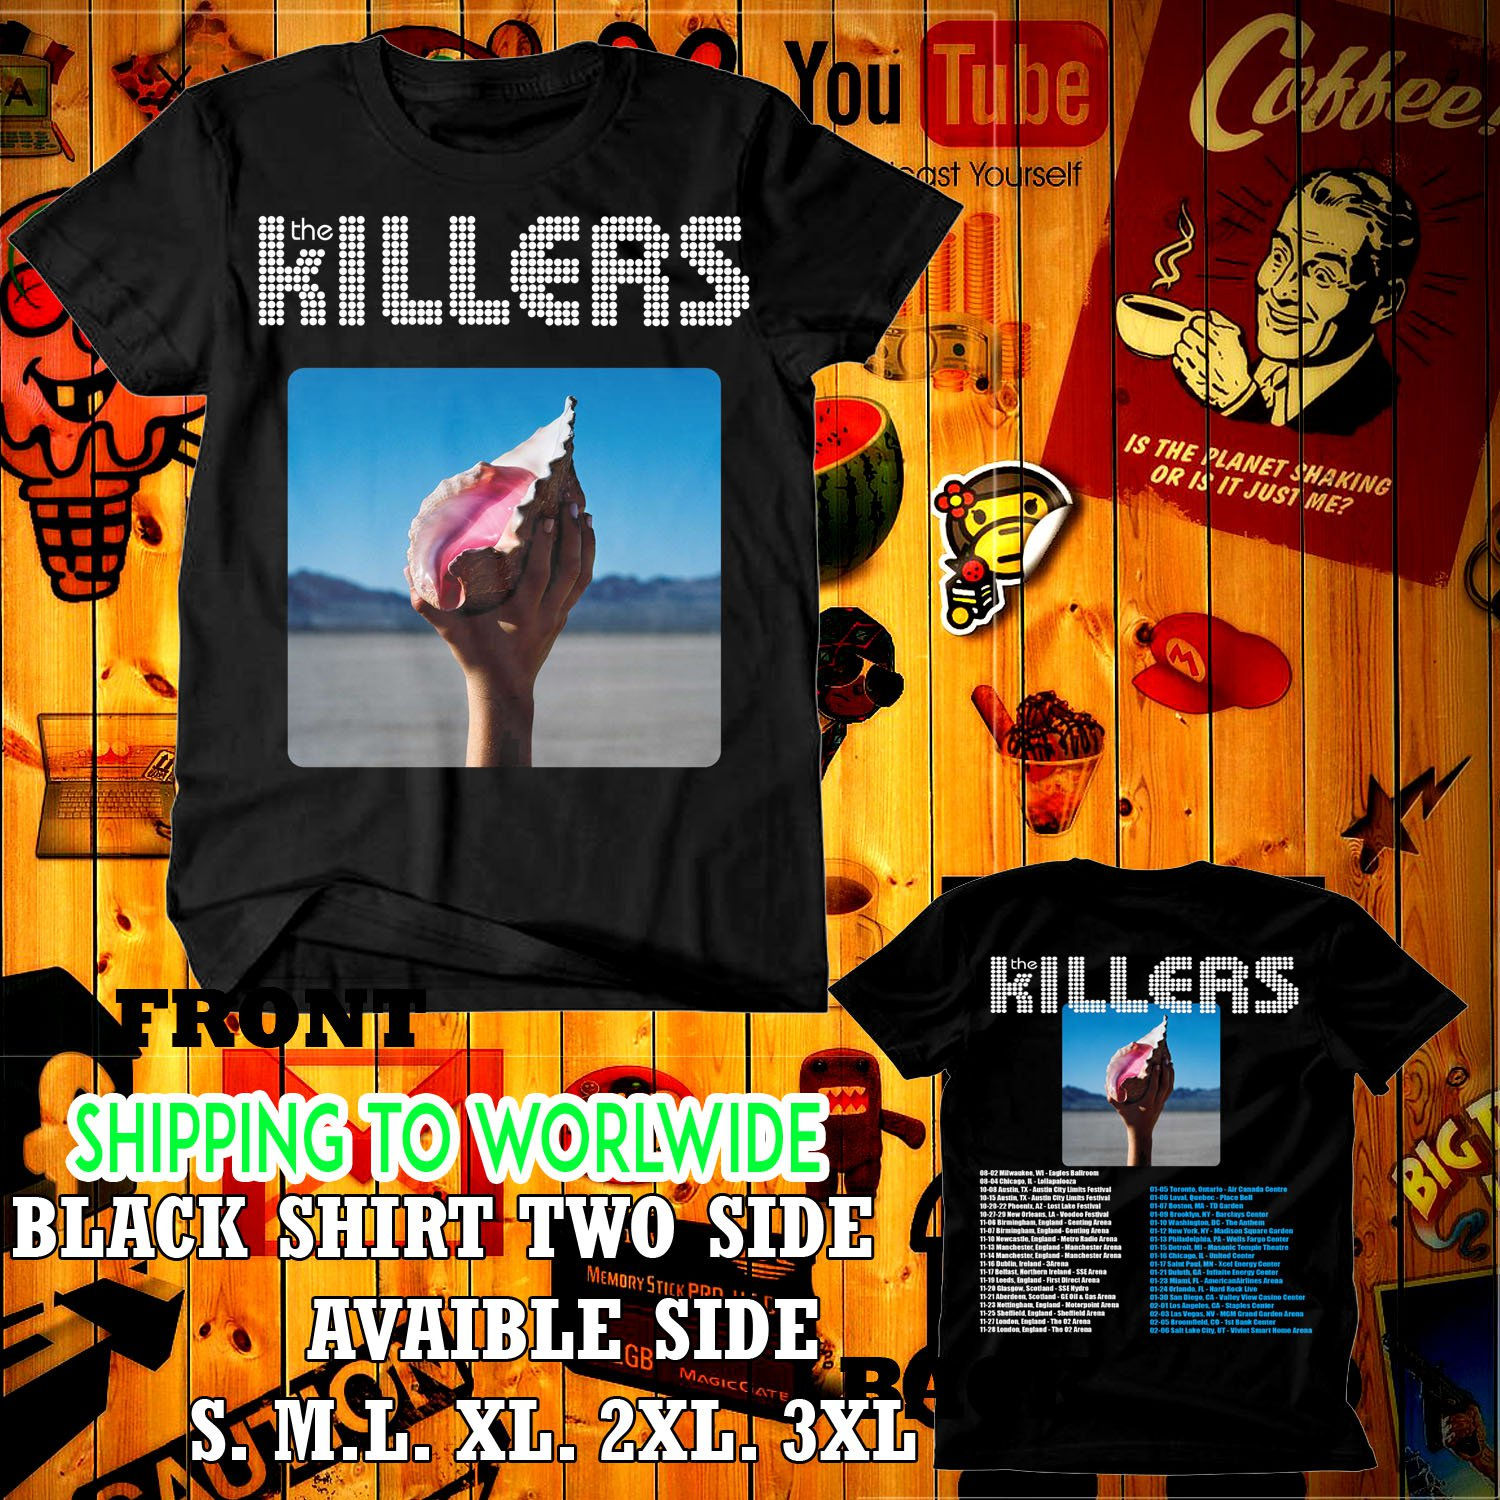 the killers tour dates 2017-18 black two side code 04d